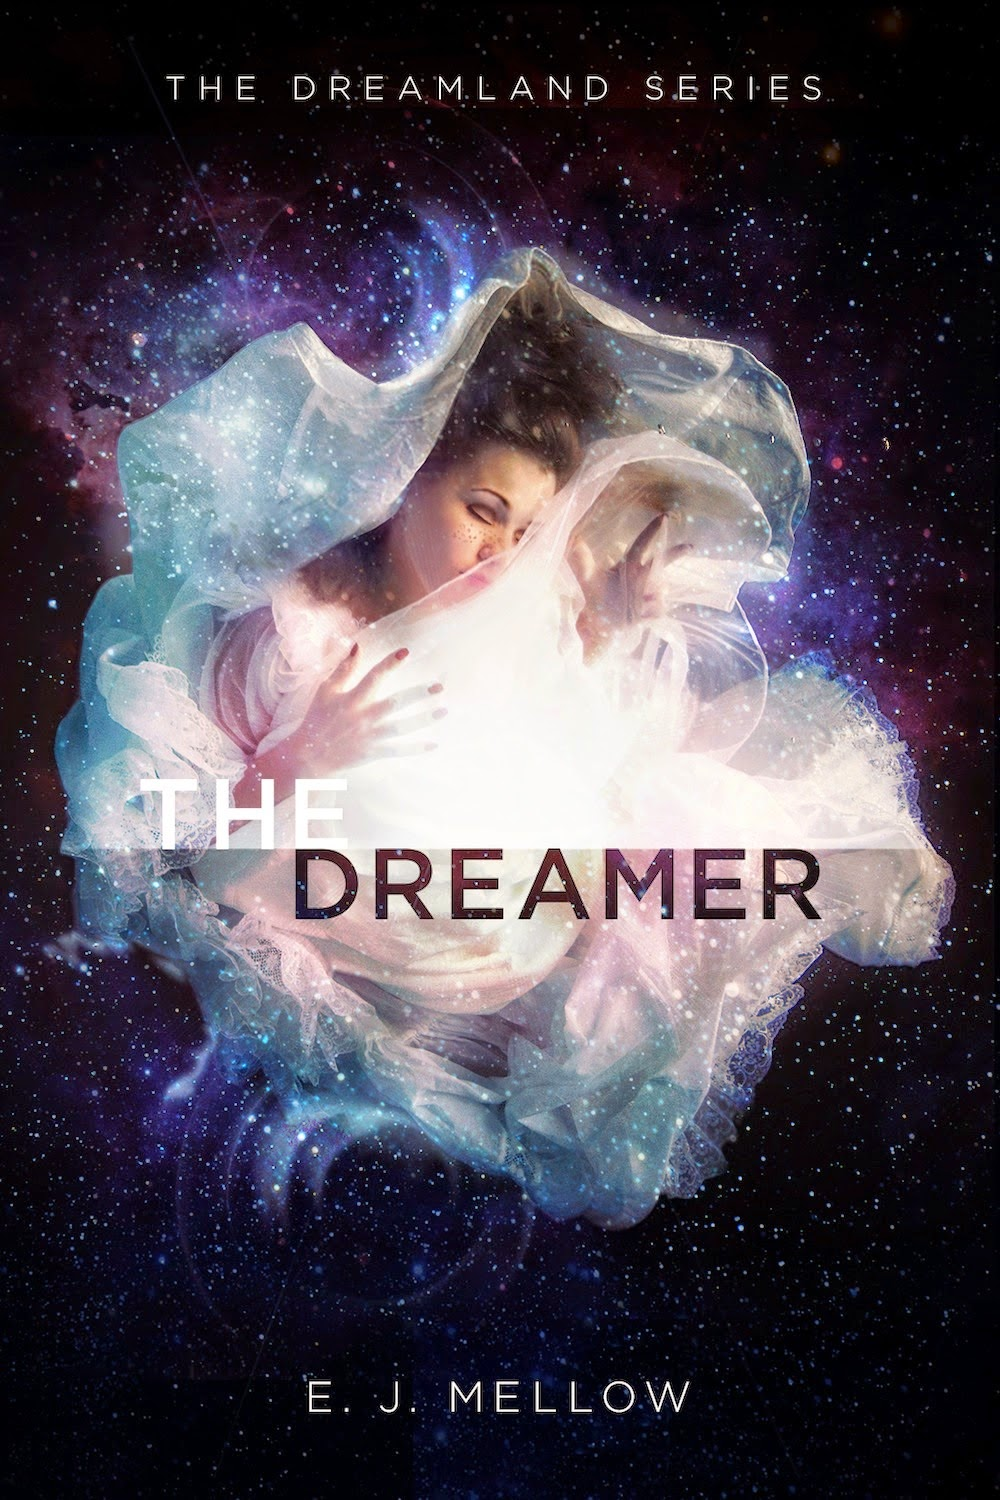 https://www.goodreads.com/book/show/25309550-the-dreamer?from_search=true&search_exp_group=group_a&search_version=service